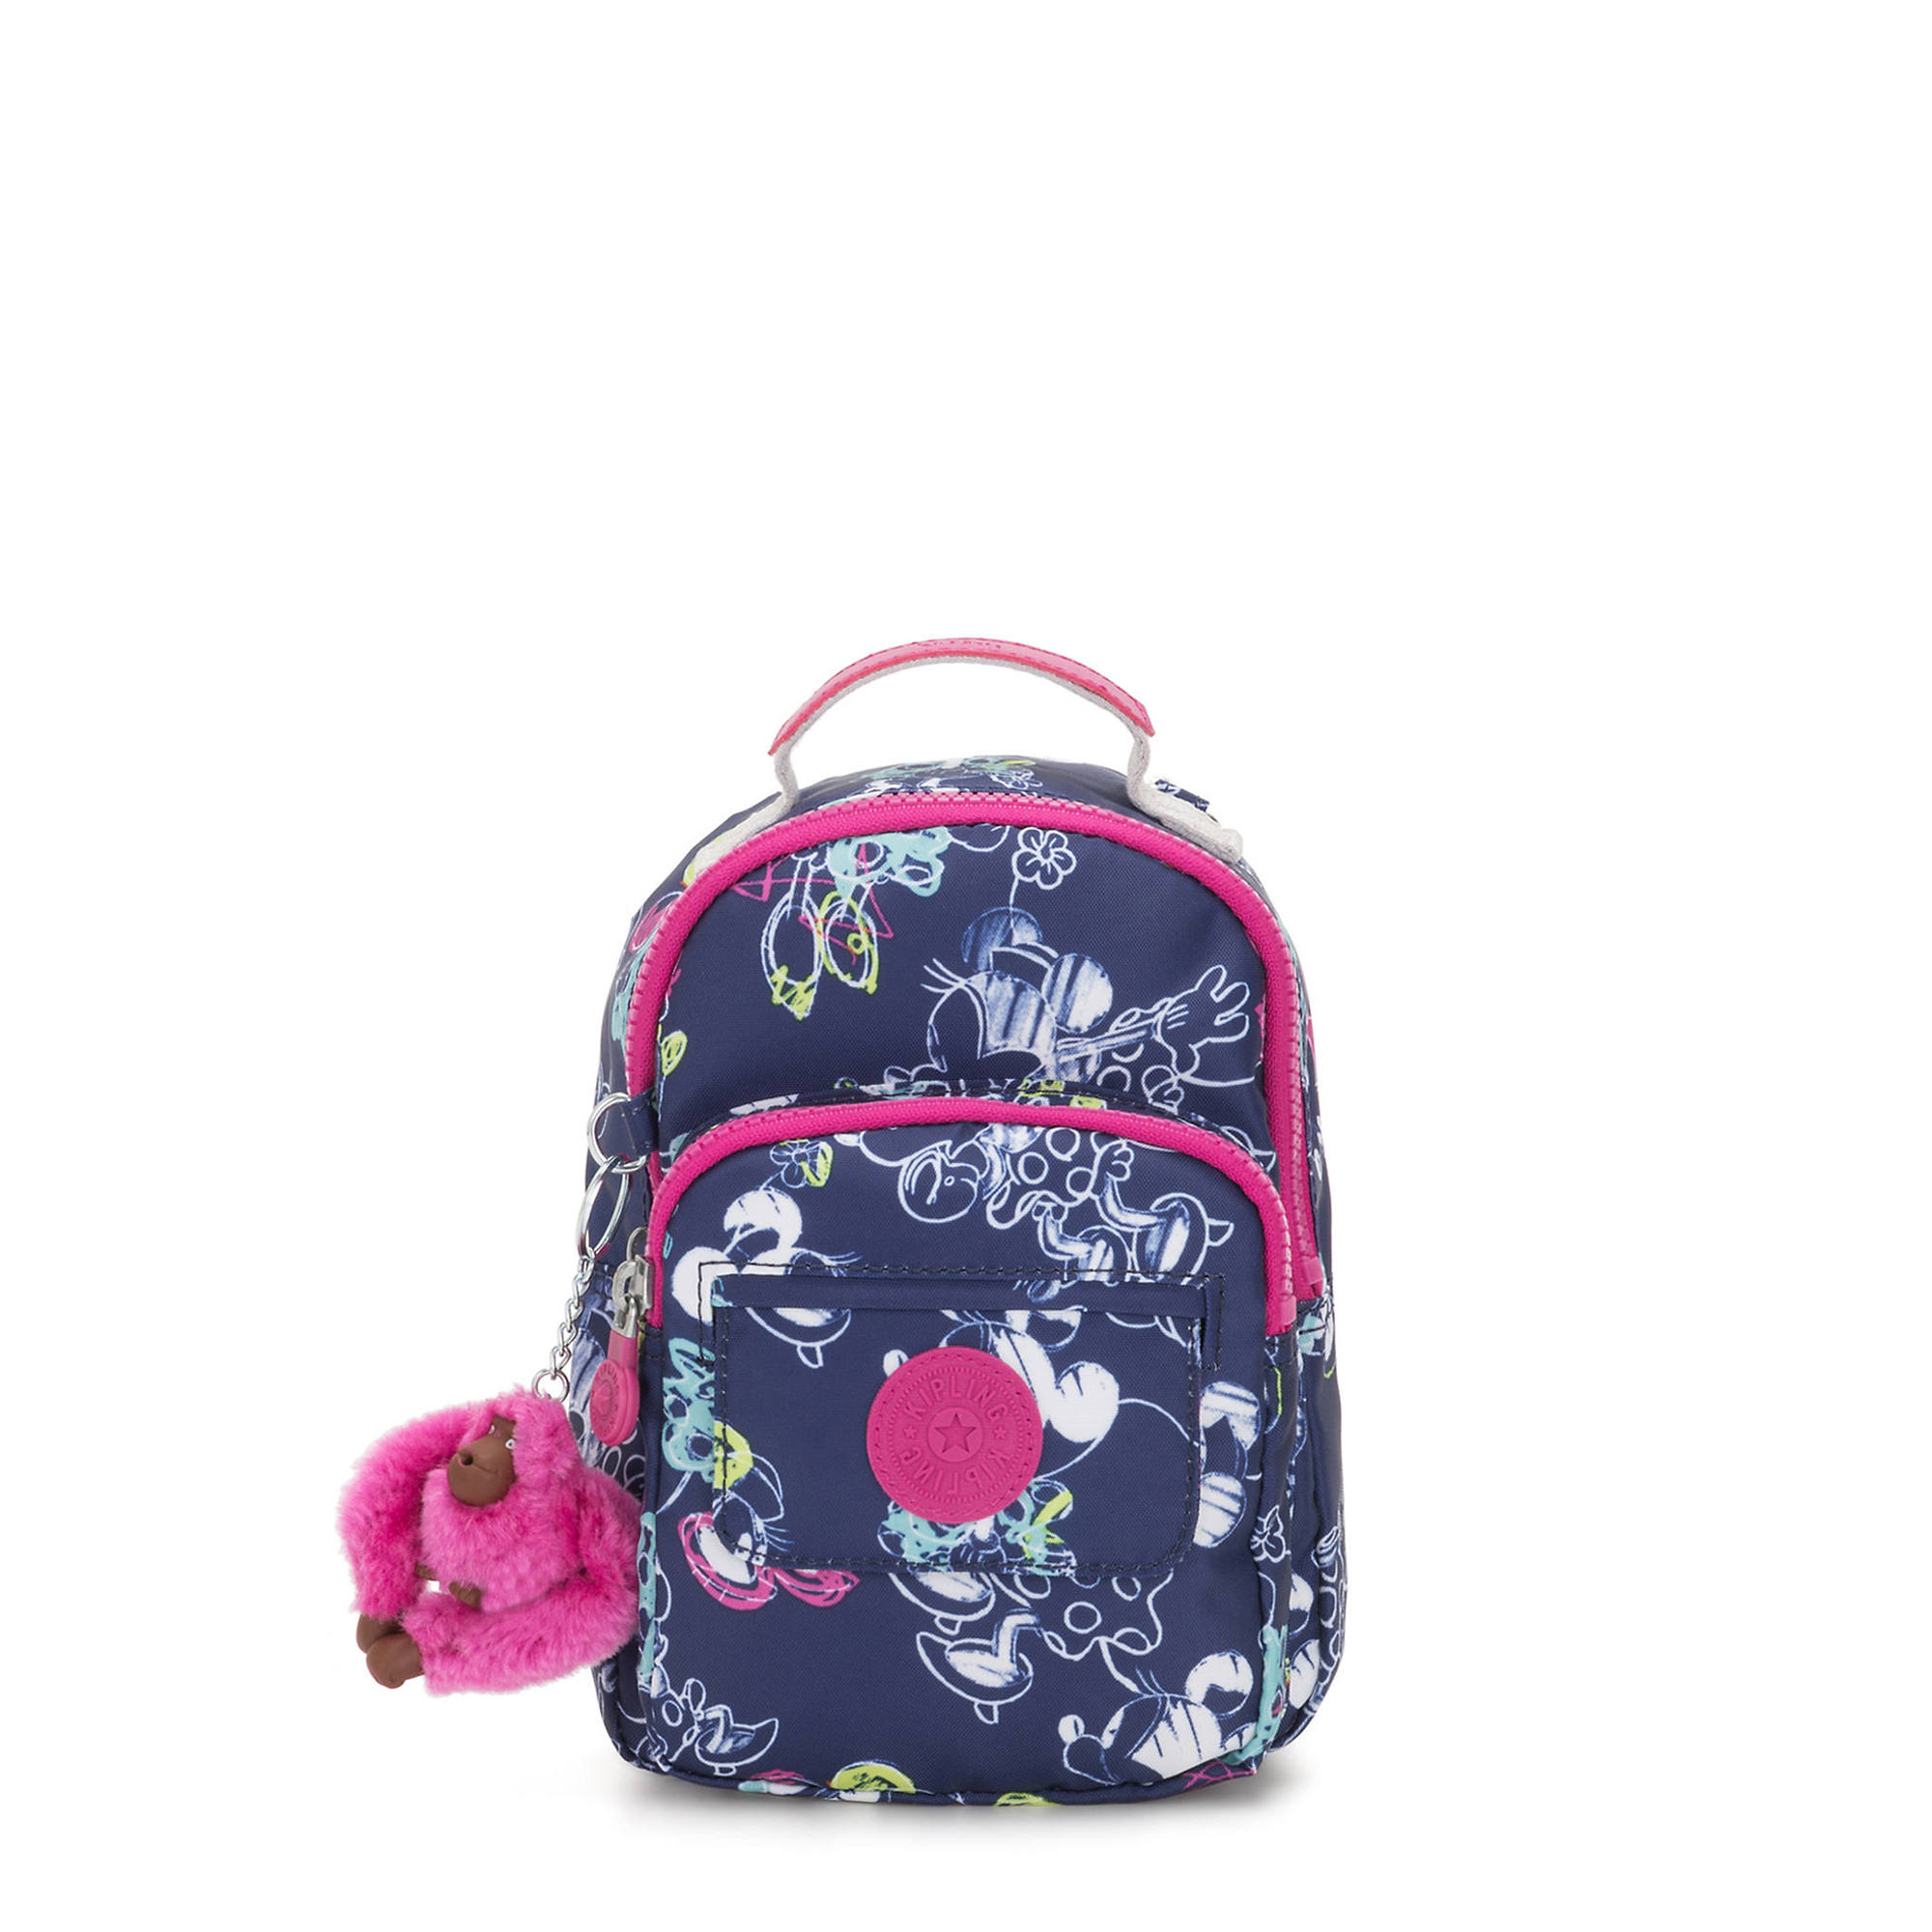 Disneys Minnie Mouse And Mickey Mouse 3 In 1 Convertible Mini Bag